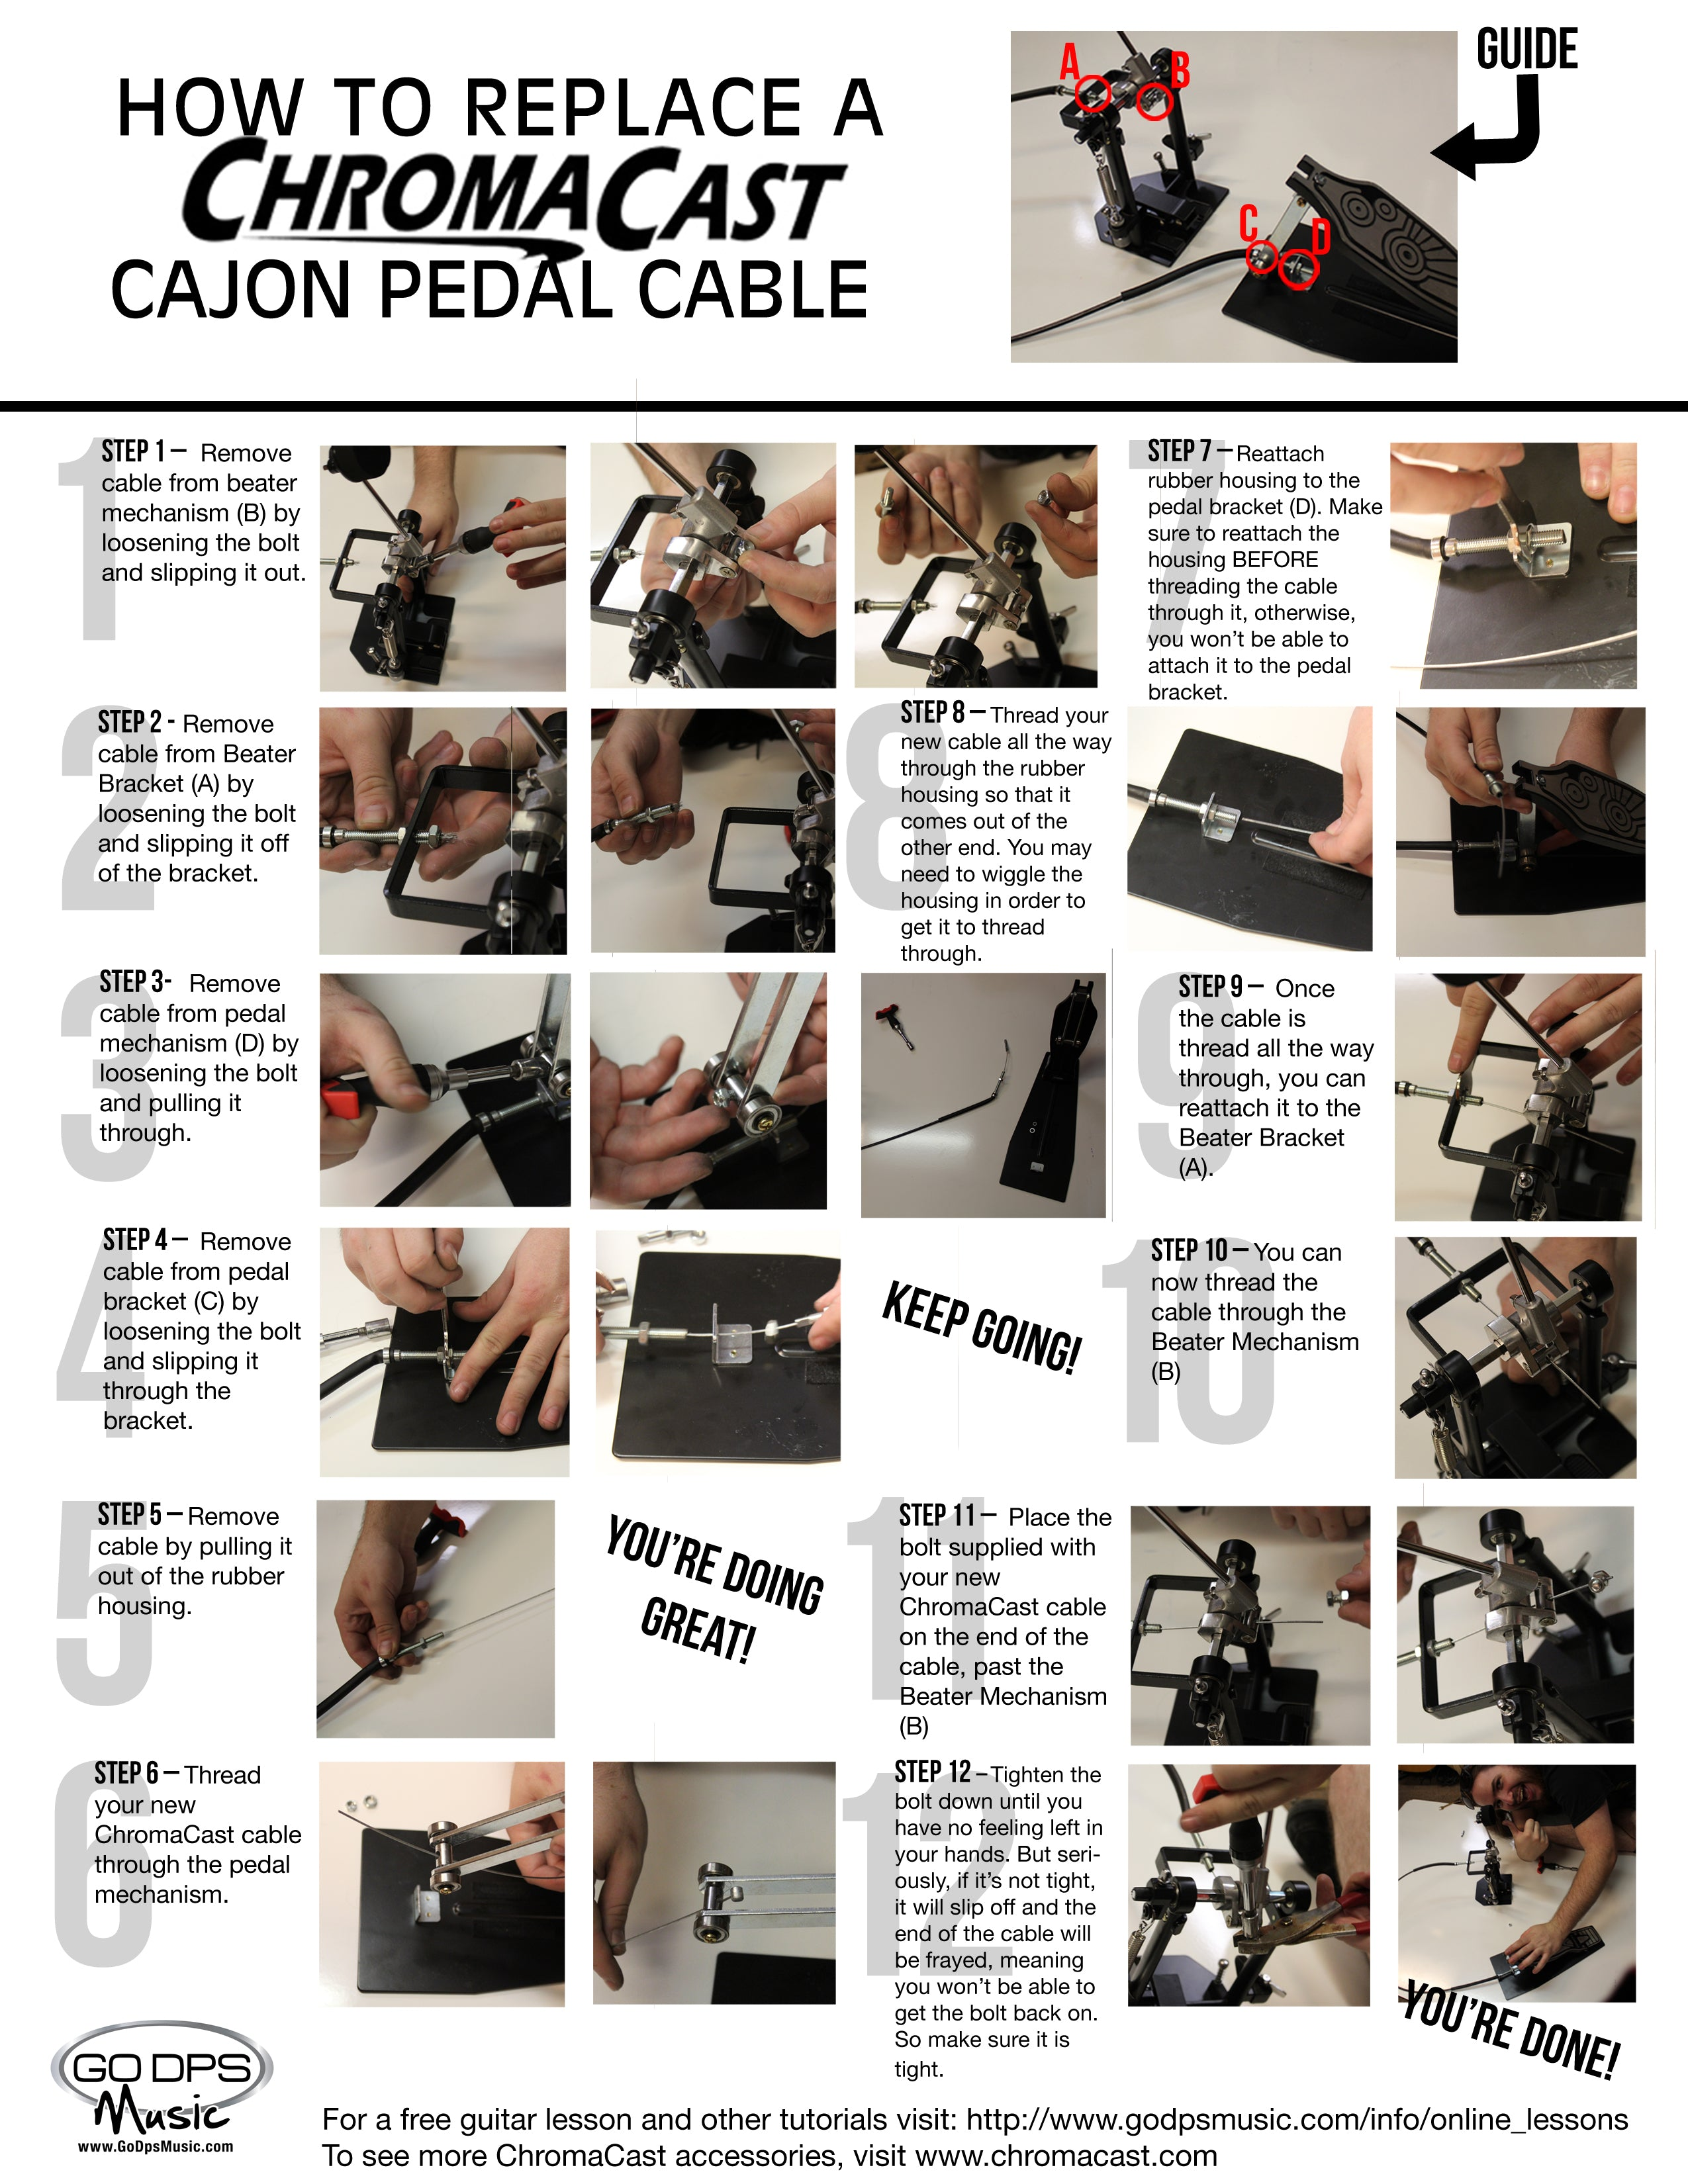 Cajon Pedal Cable Replacement